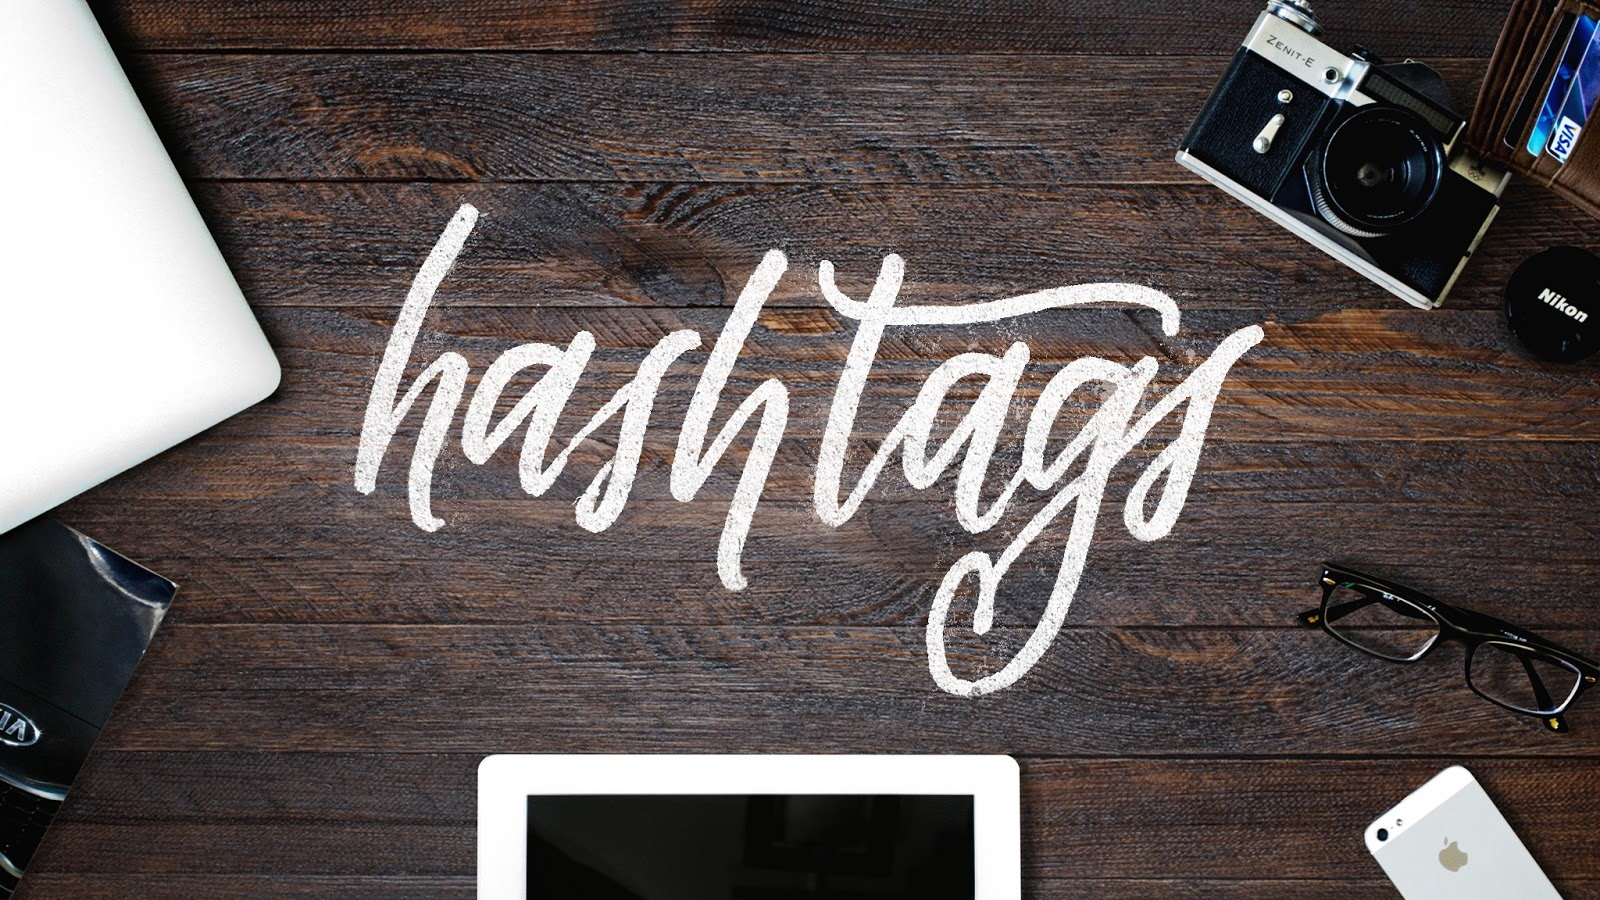 How To Make Use Of hashtags And Quotes On Instagram_Image Source Google